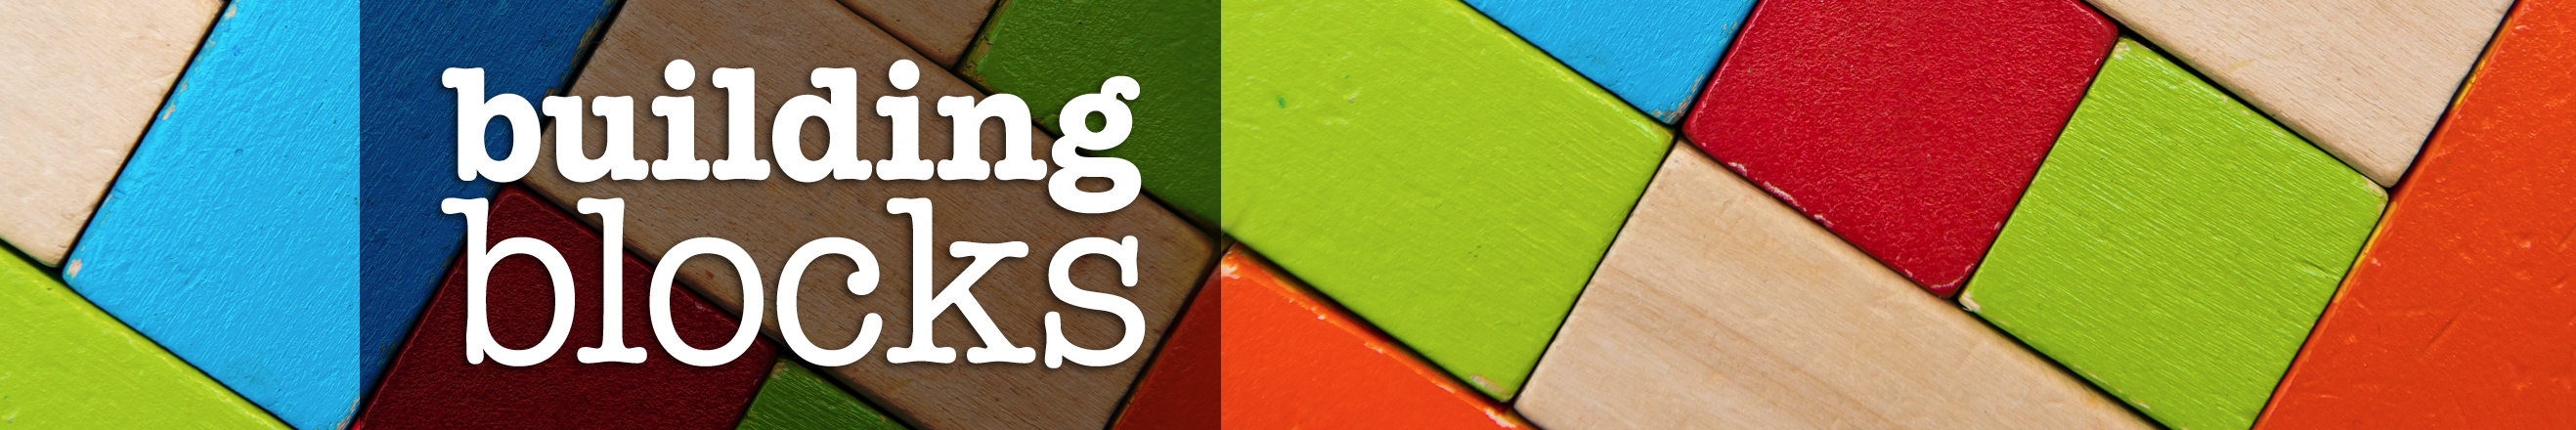 Building Blocks Banner 2.jpeg